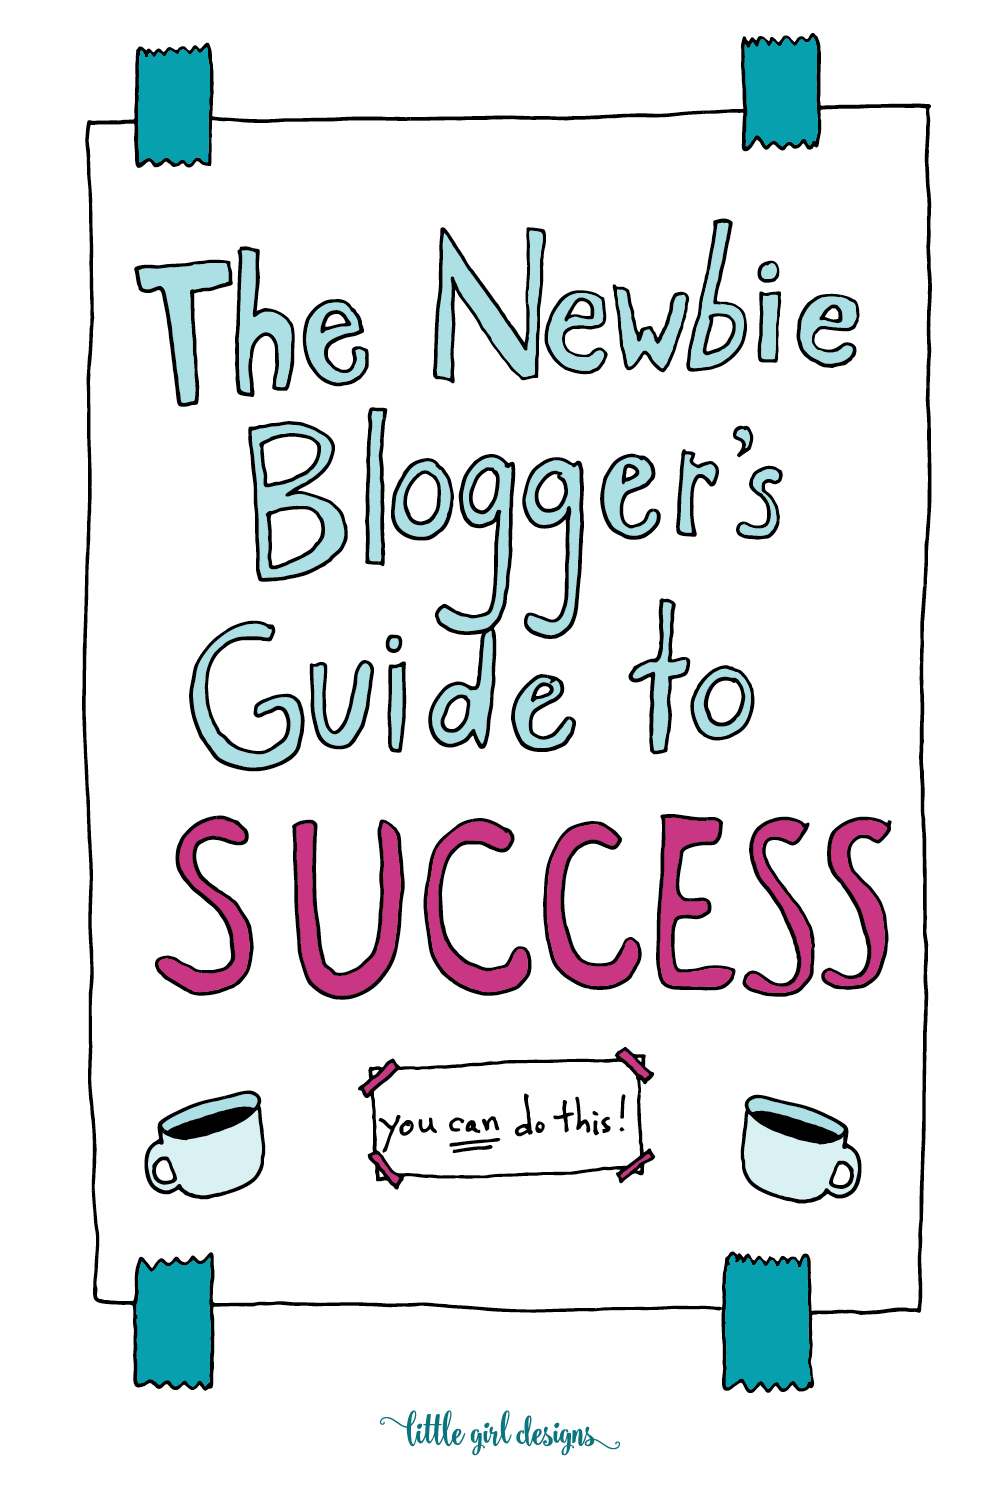 This new blogger started making money from her blog her first year! She teaches you how to set up your newsletter, reach out to brands, much more. Love this!